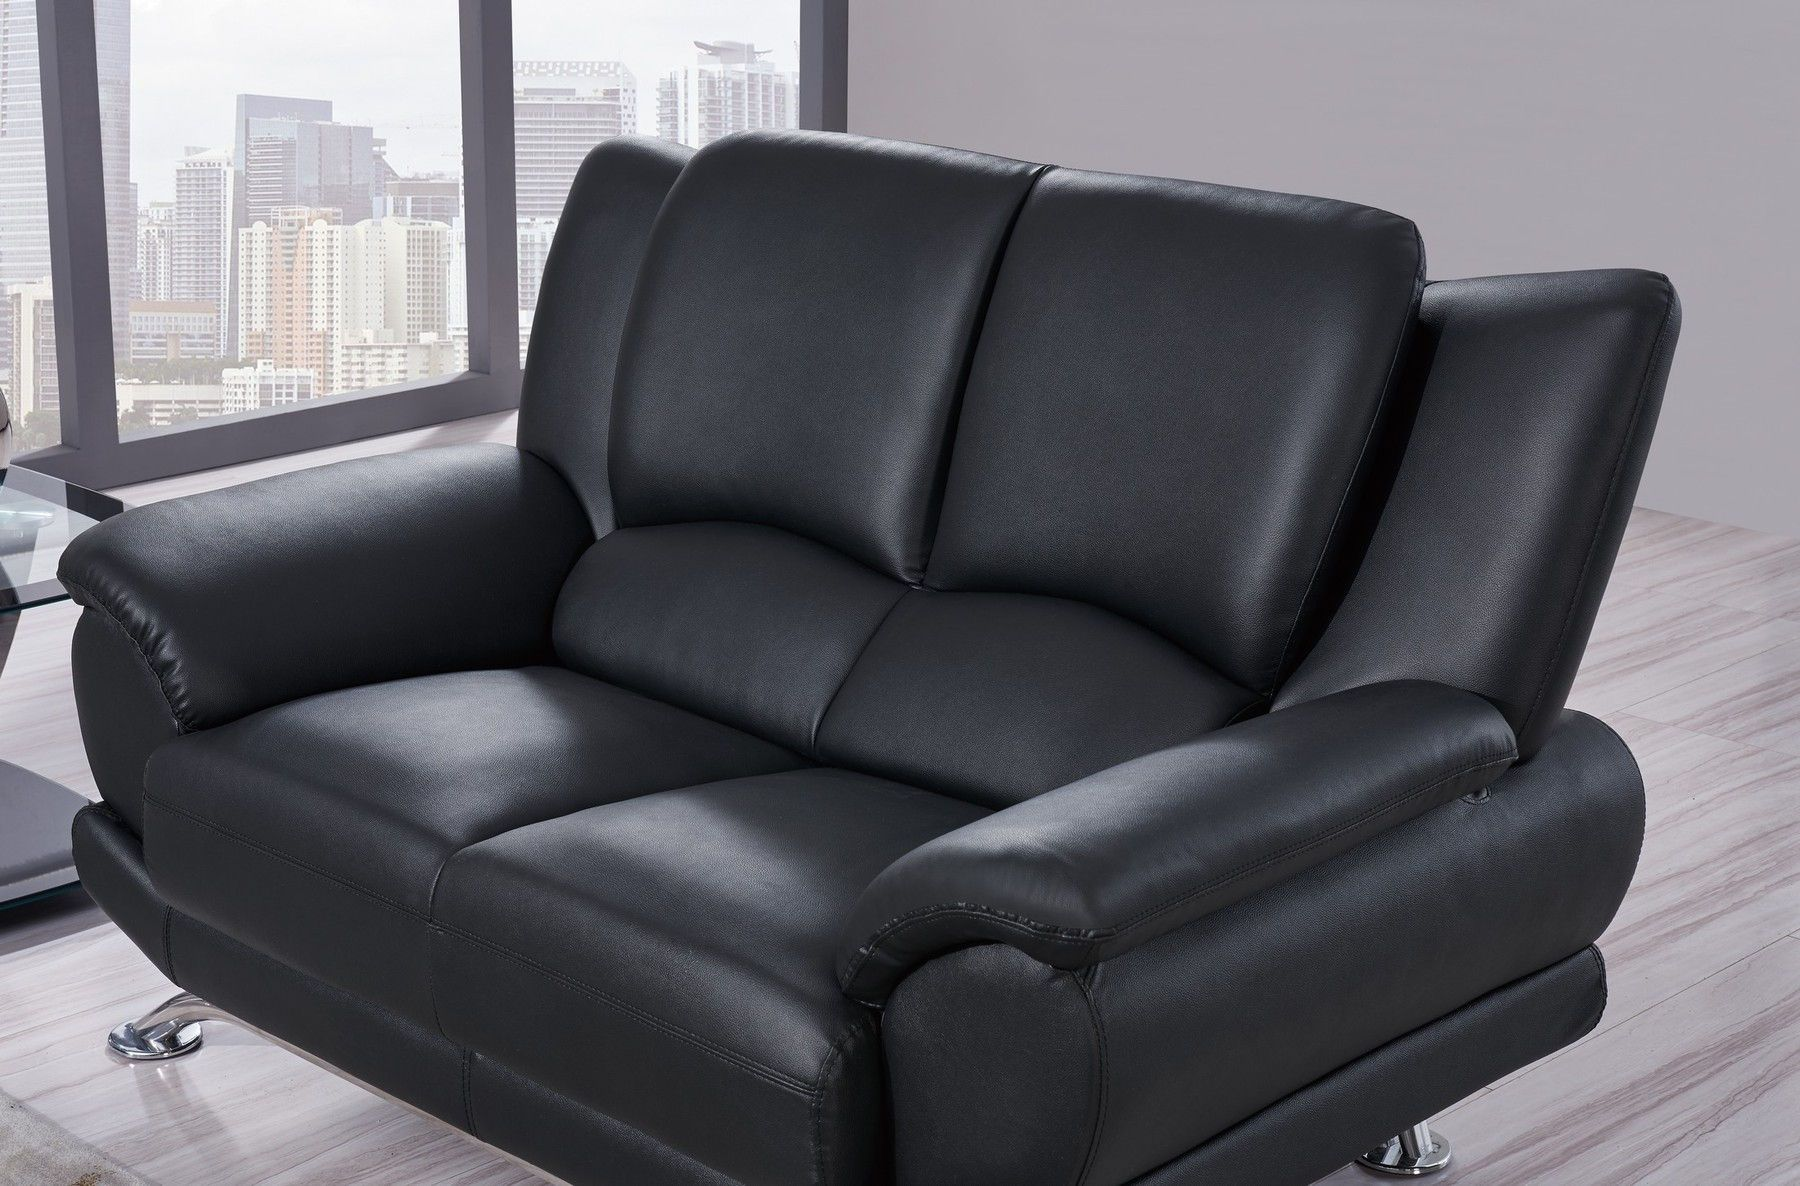 G9908 Black Sofa Modern Leather Sofa Leather Sofa Leather Loveseat